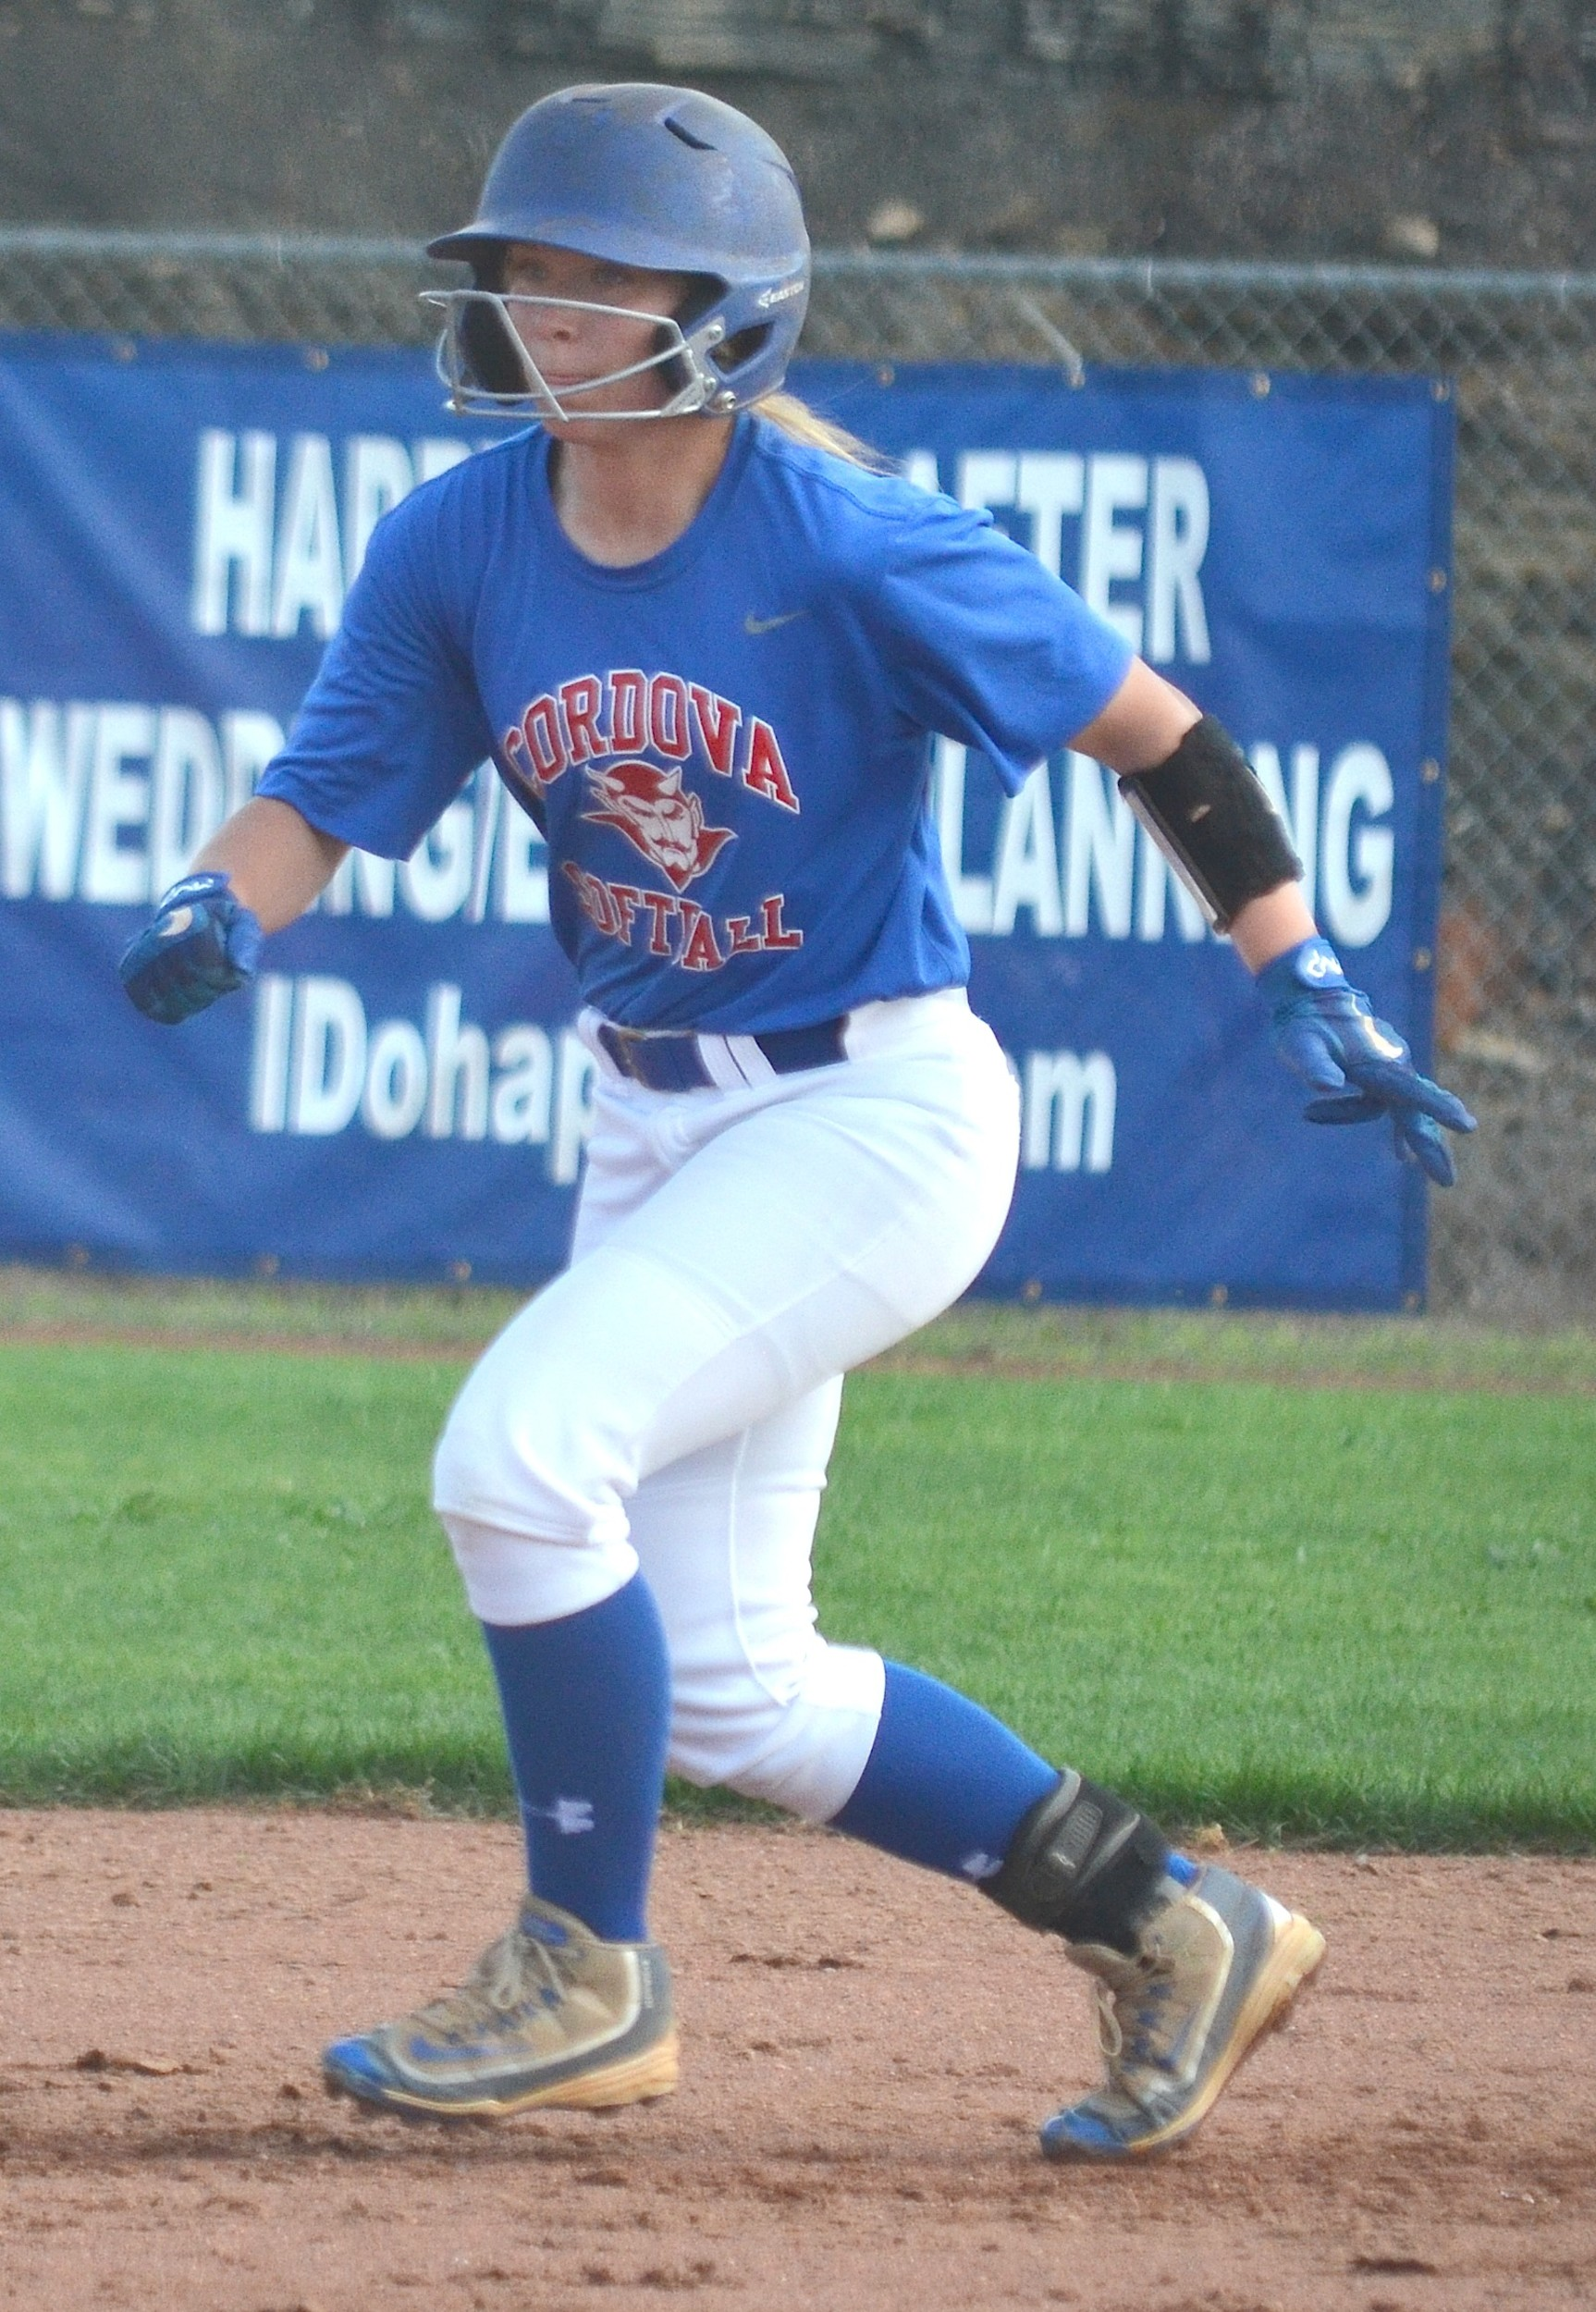 Cordova's Emma Hyche takes a lead off second base during a home game against Curry this season. The Blue Devils are heading back to the North Central Regional Tournament after a one year absence.